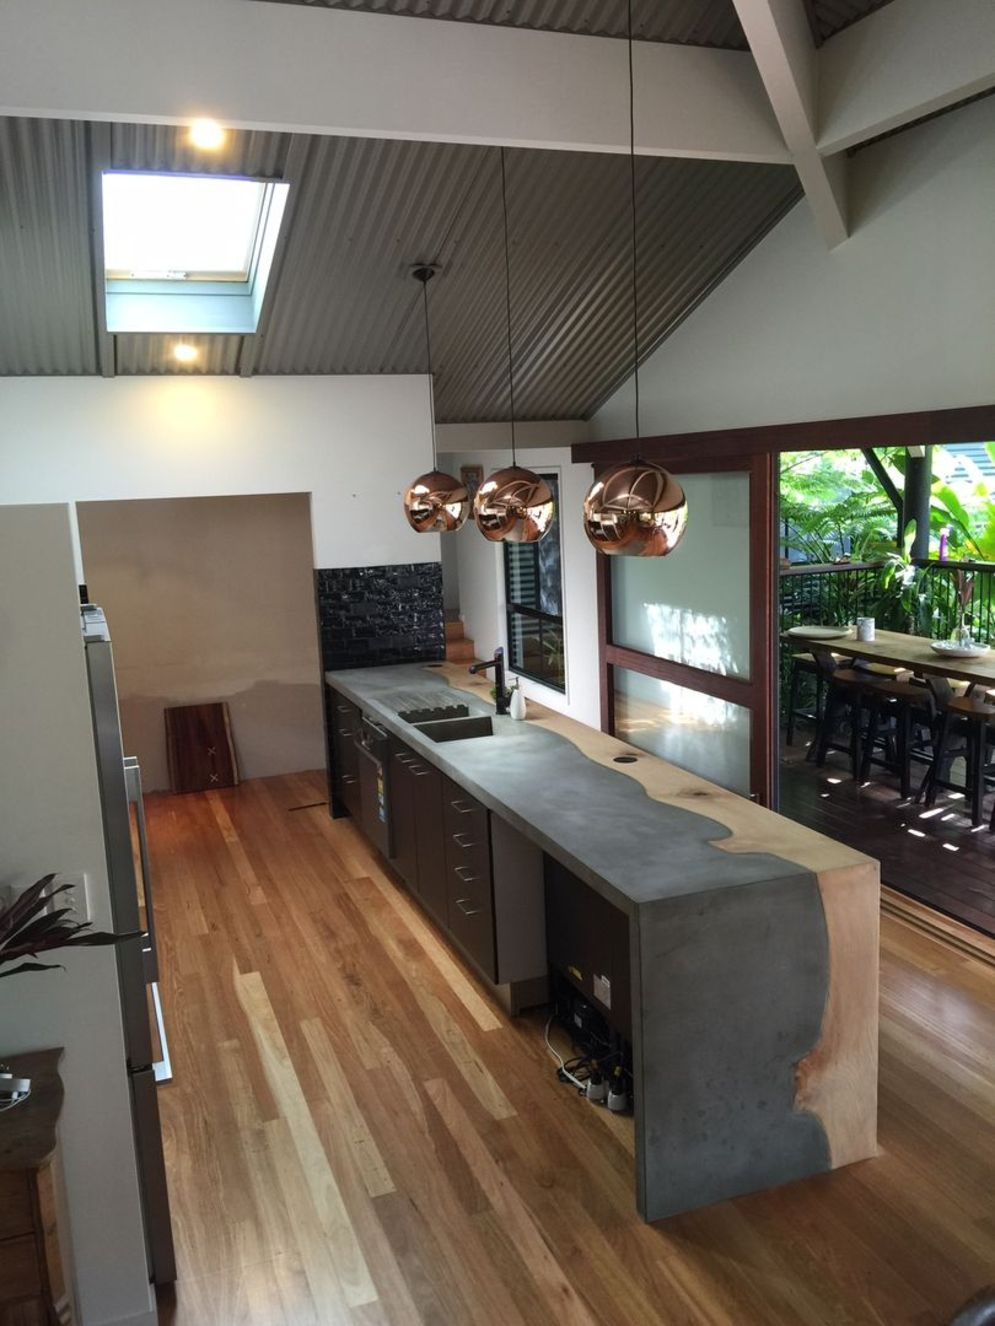 Modern kitchen updates using efficient concrete benchtops to show sturdier interior display Image 26